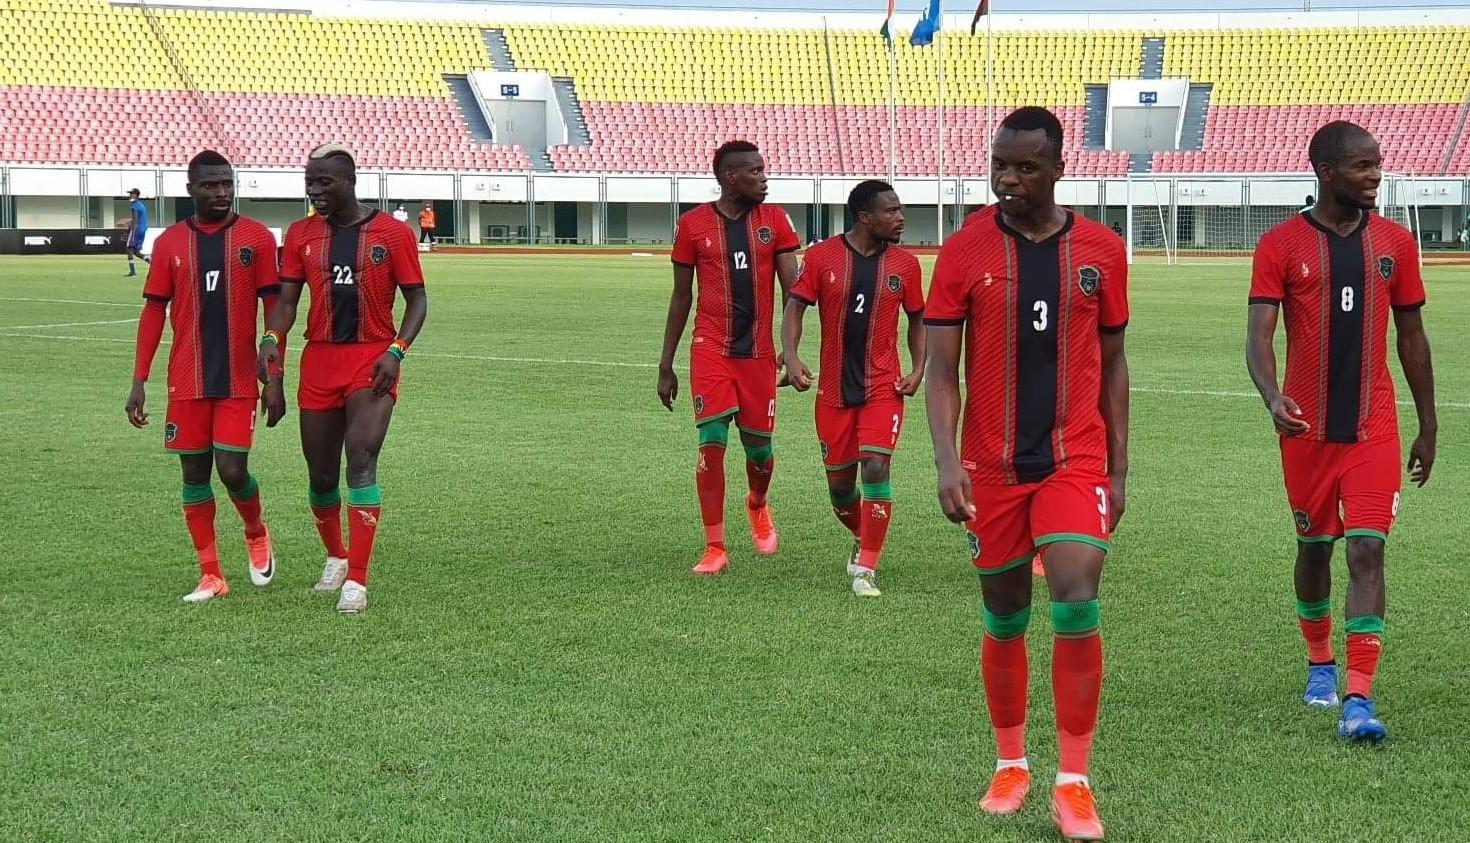 It's over: Malawi lose sight of Qatar FIFA world Cup